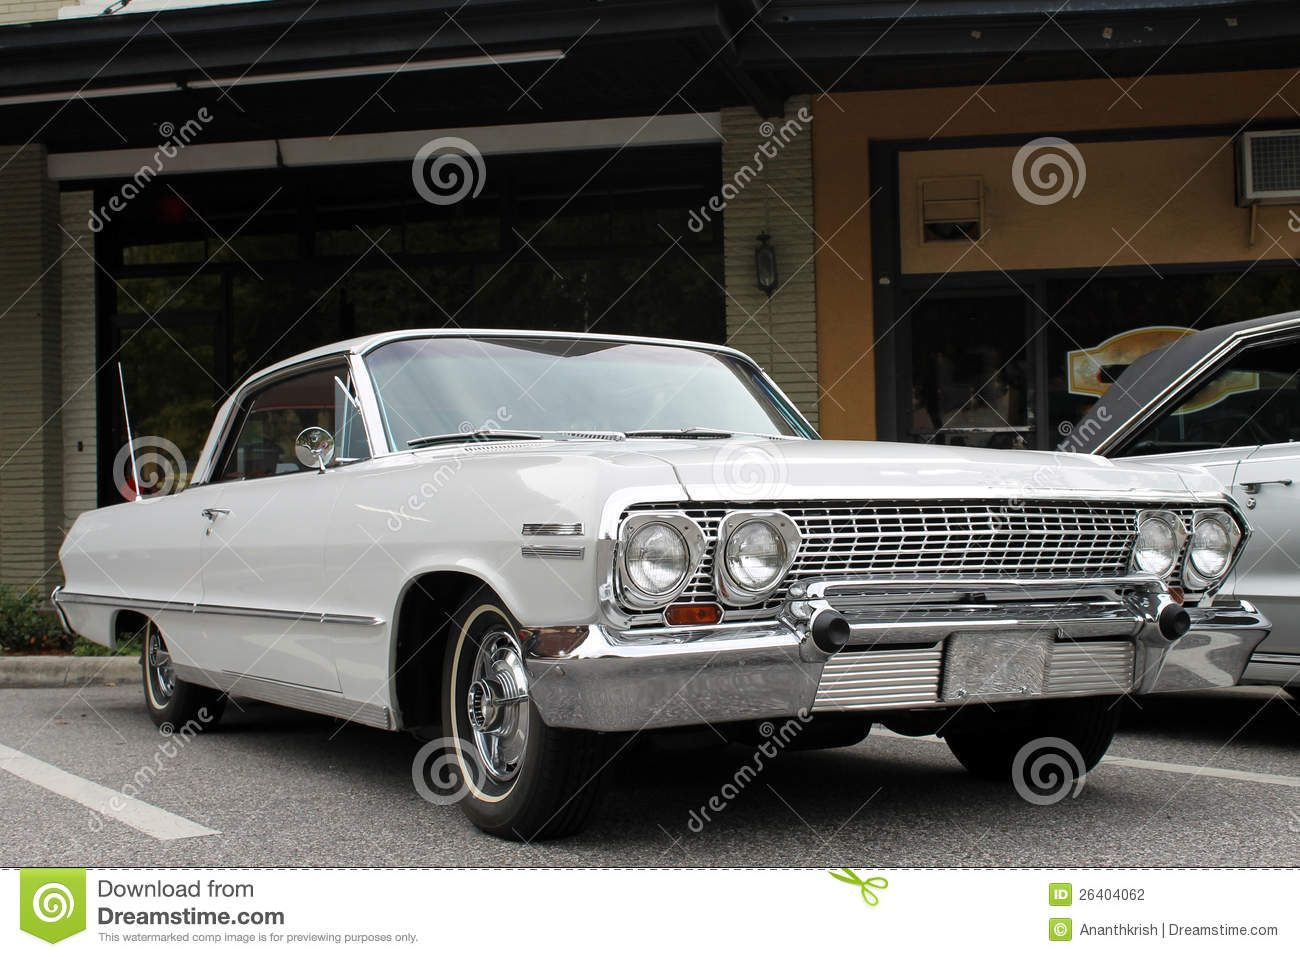 The old Chevrolet car | Cool cars! ♥ | Pinterest | Chevrolet ...